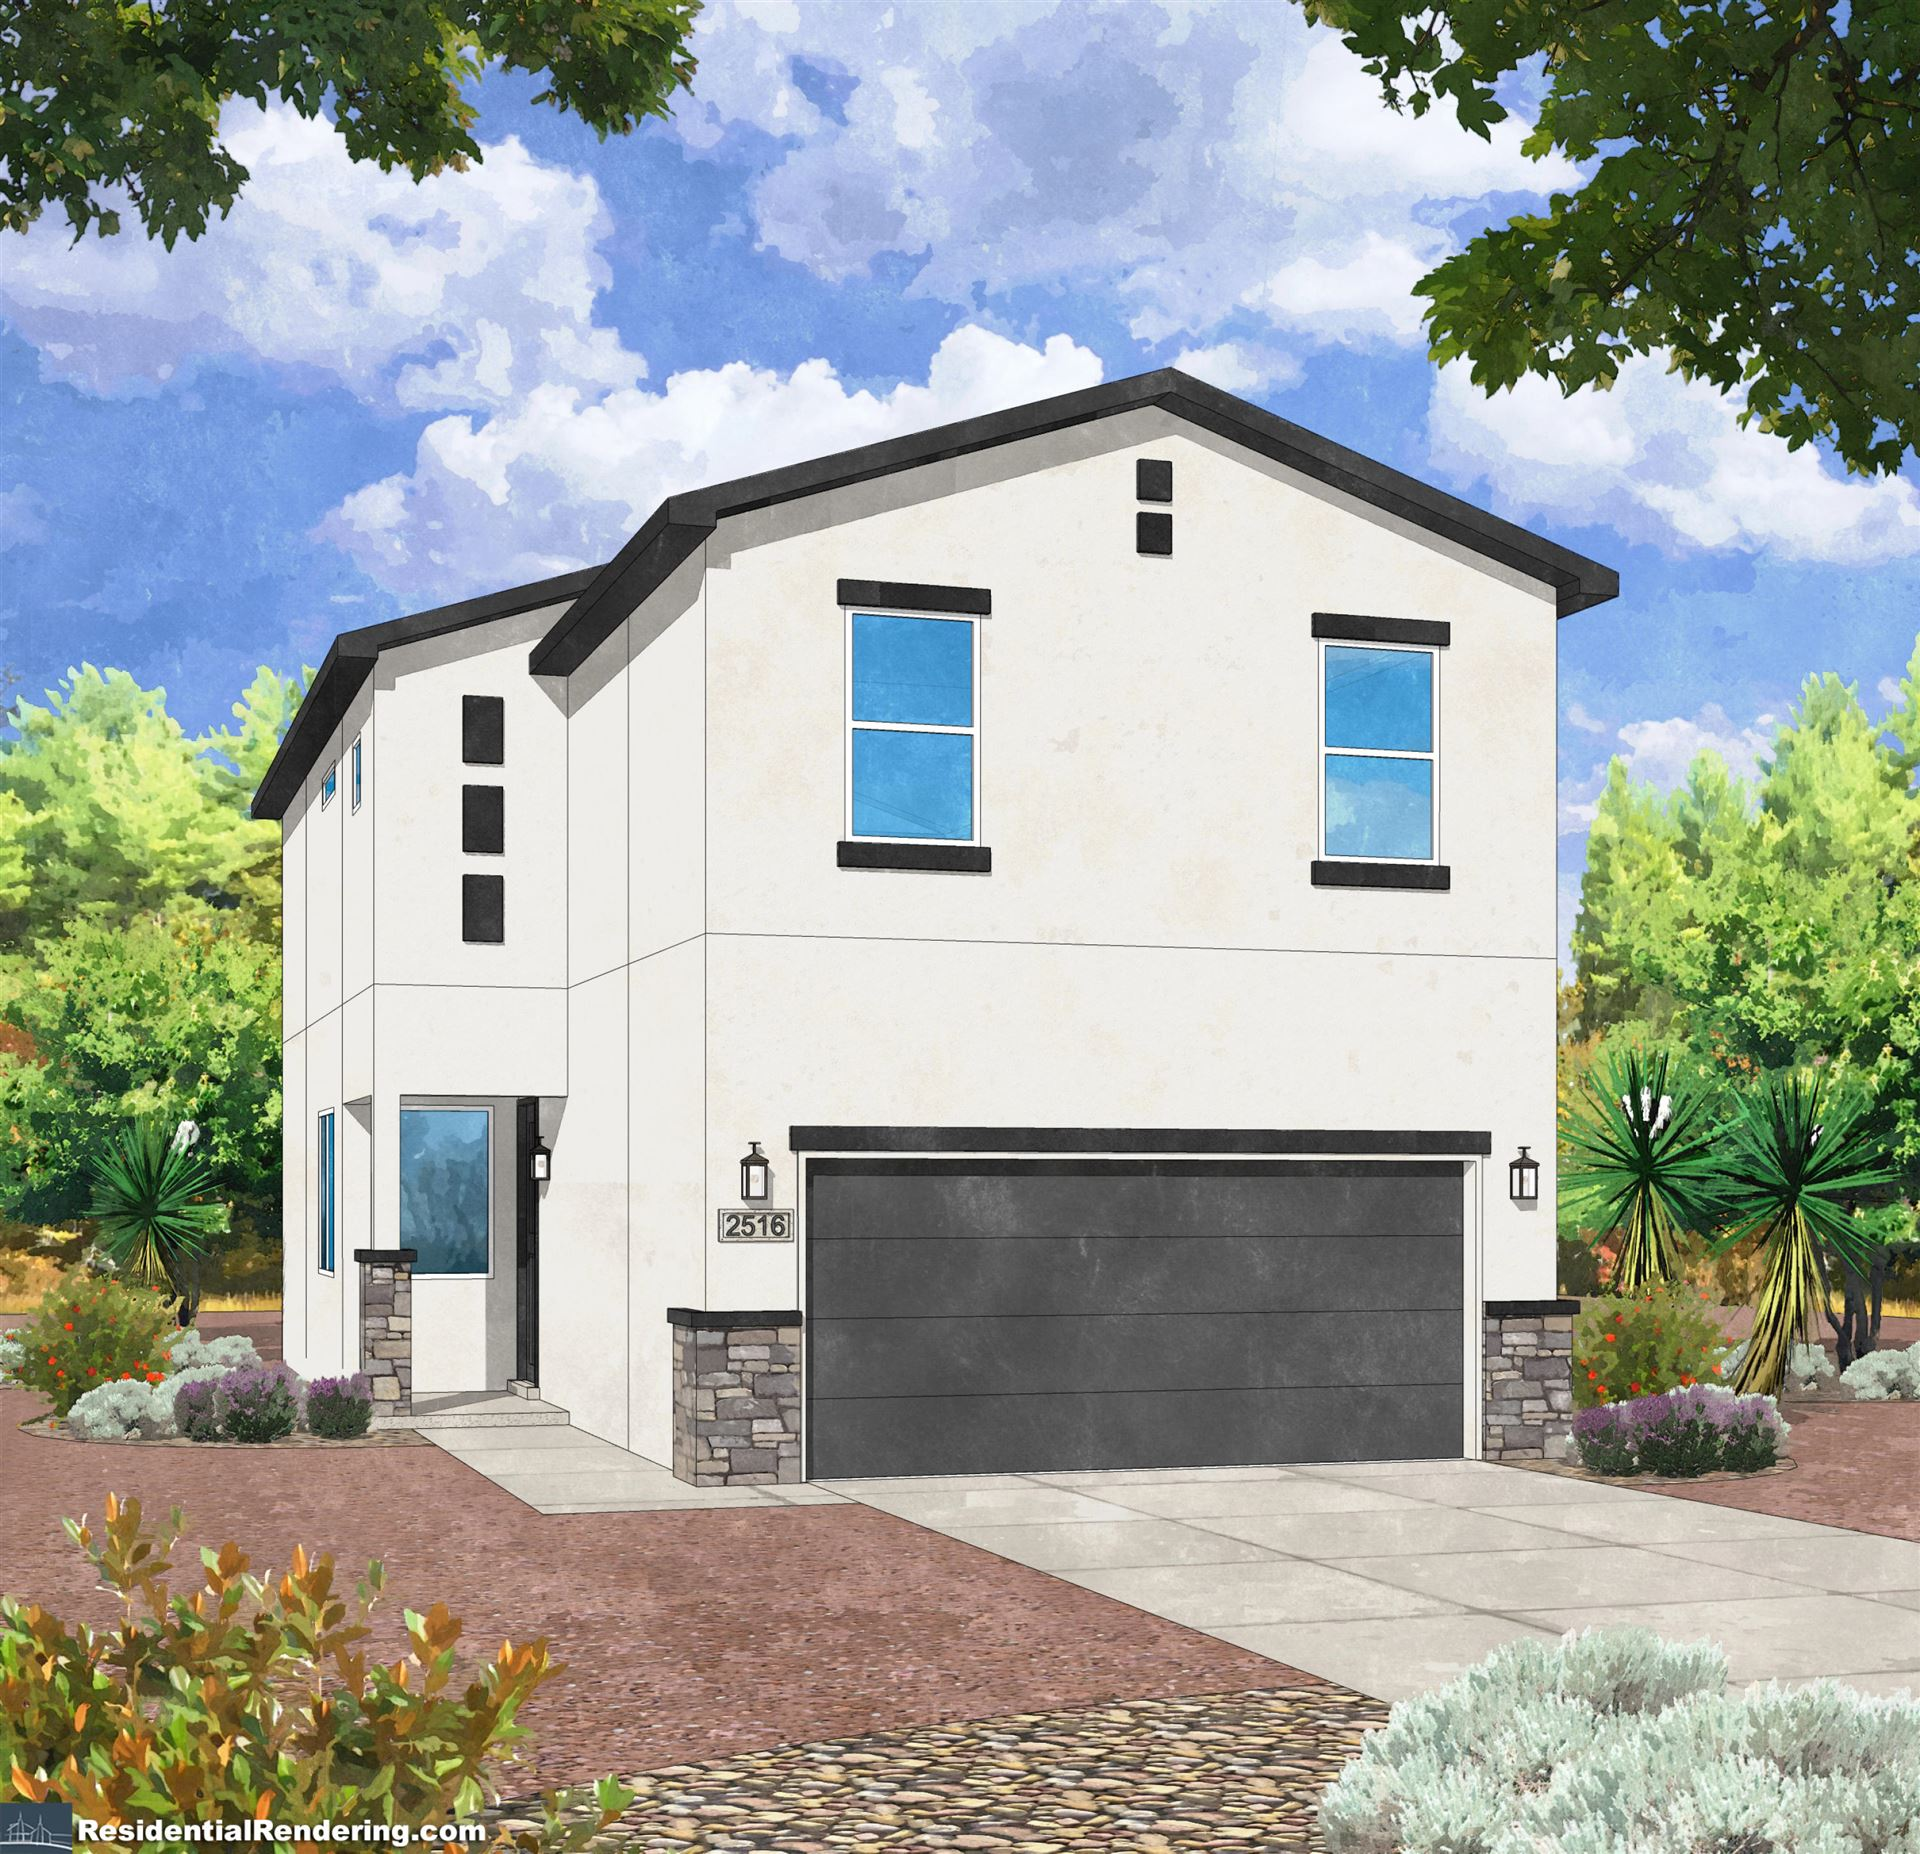 1810 Mulberry Court, Rio Rancho, NM 87144 - MLS#: 987026